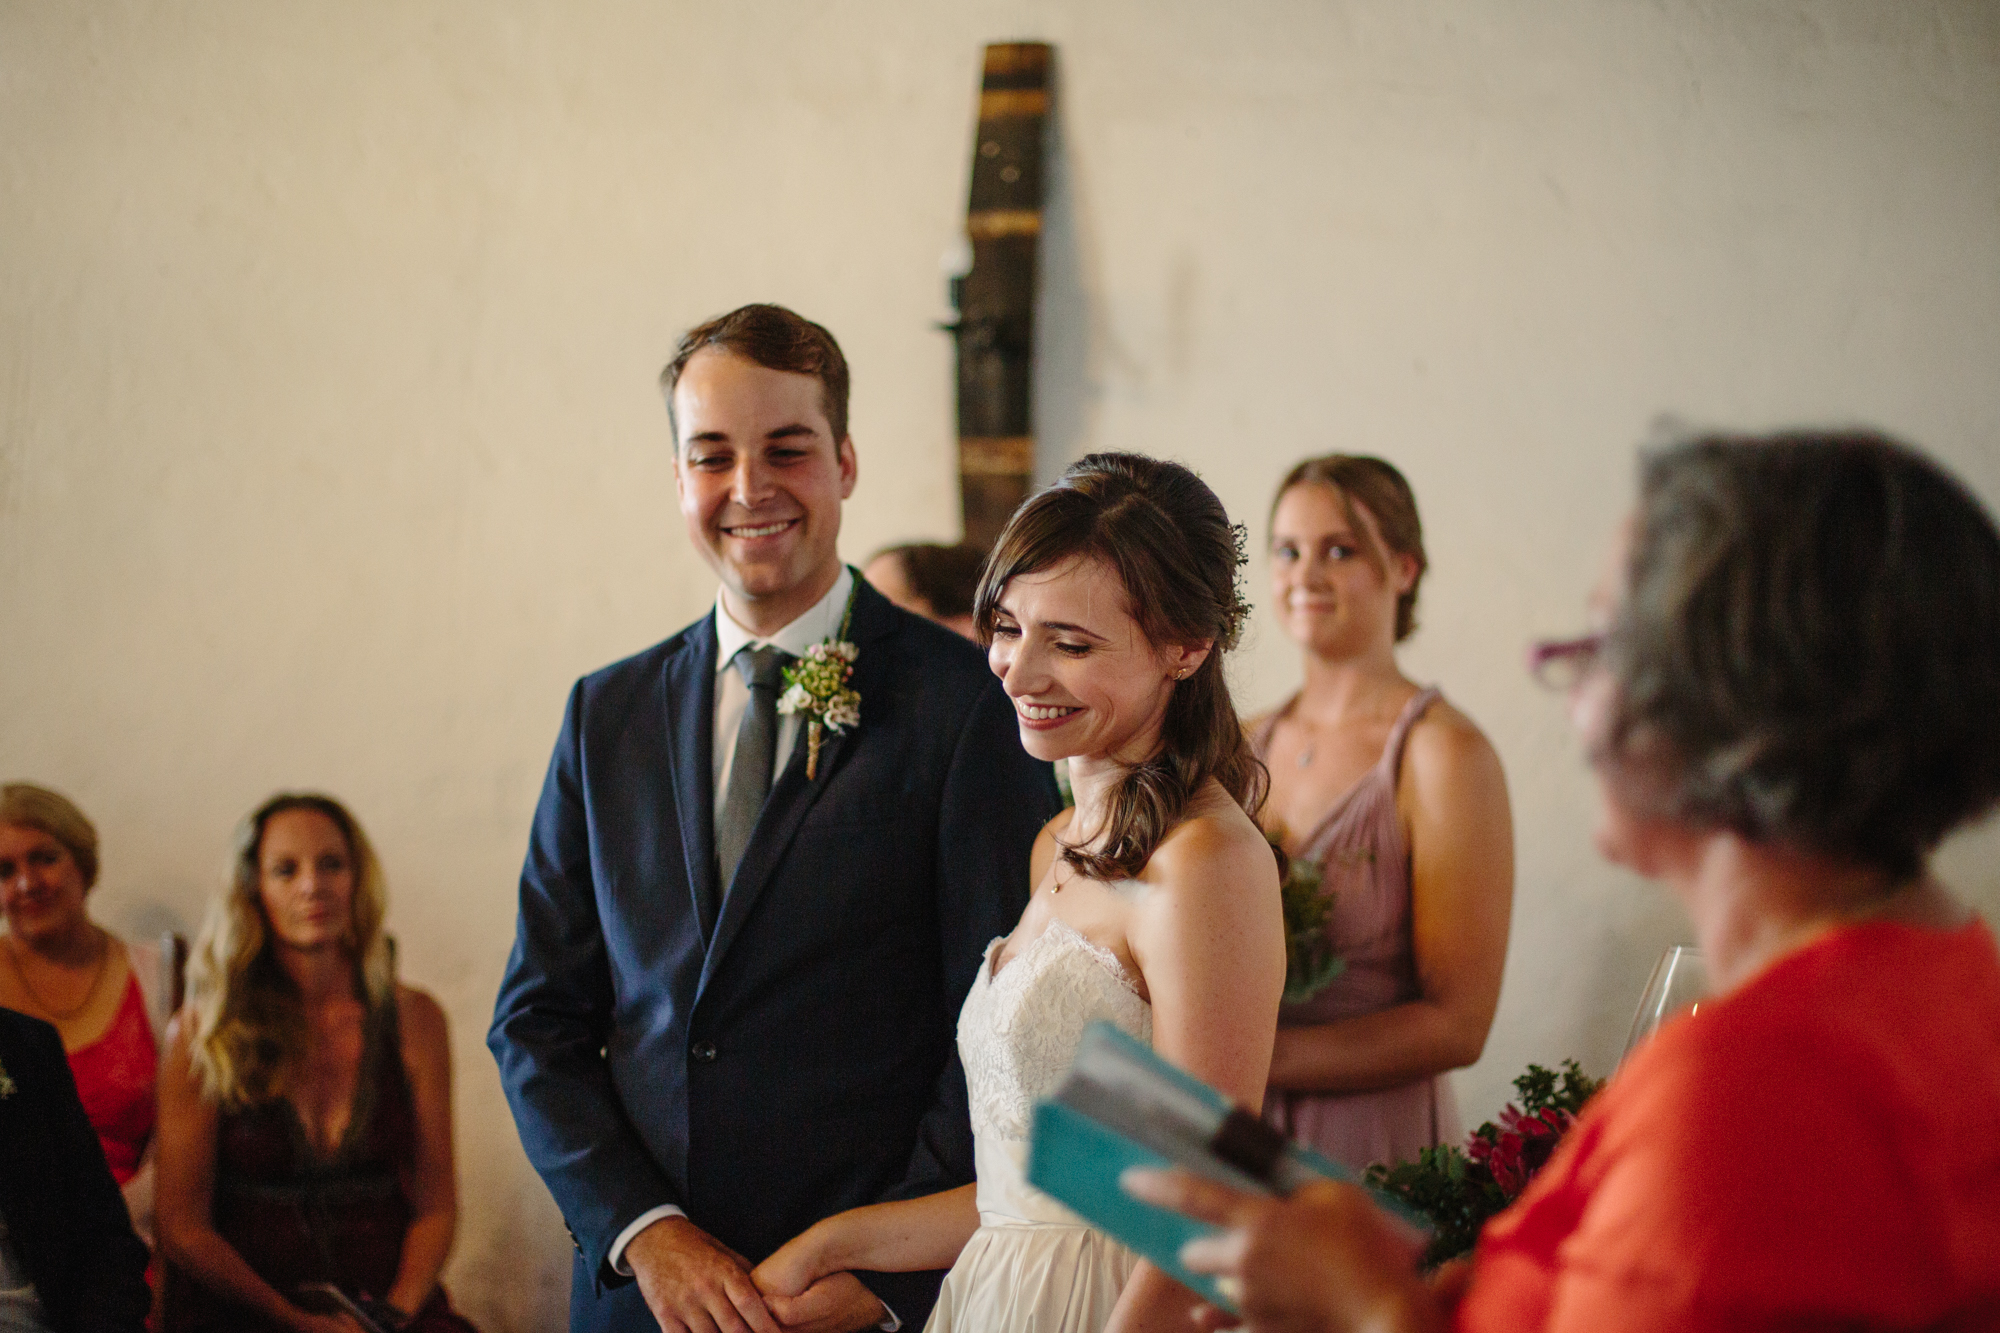 KOA_PHOTOGRAPHY-JAMES&SHARON -0670.JPG